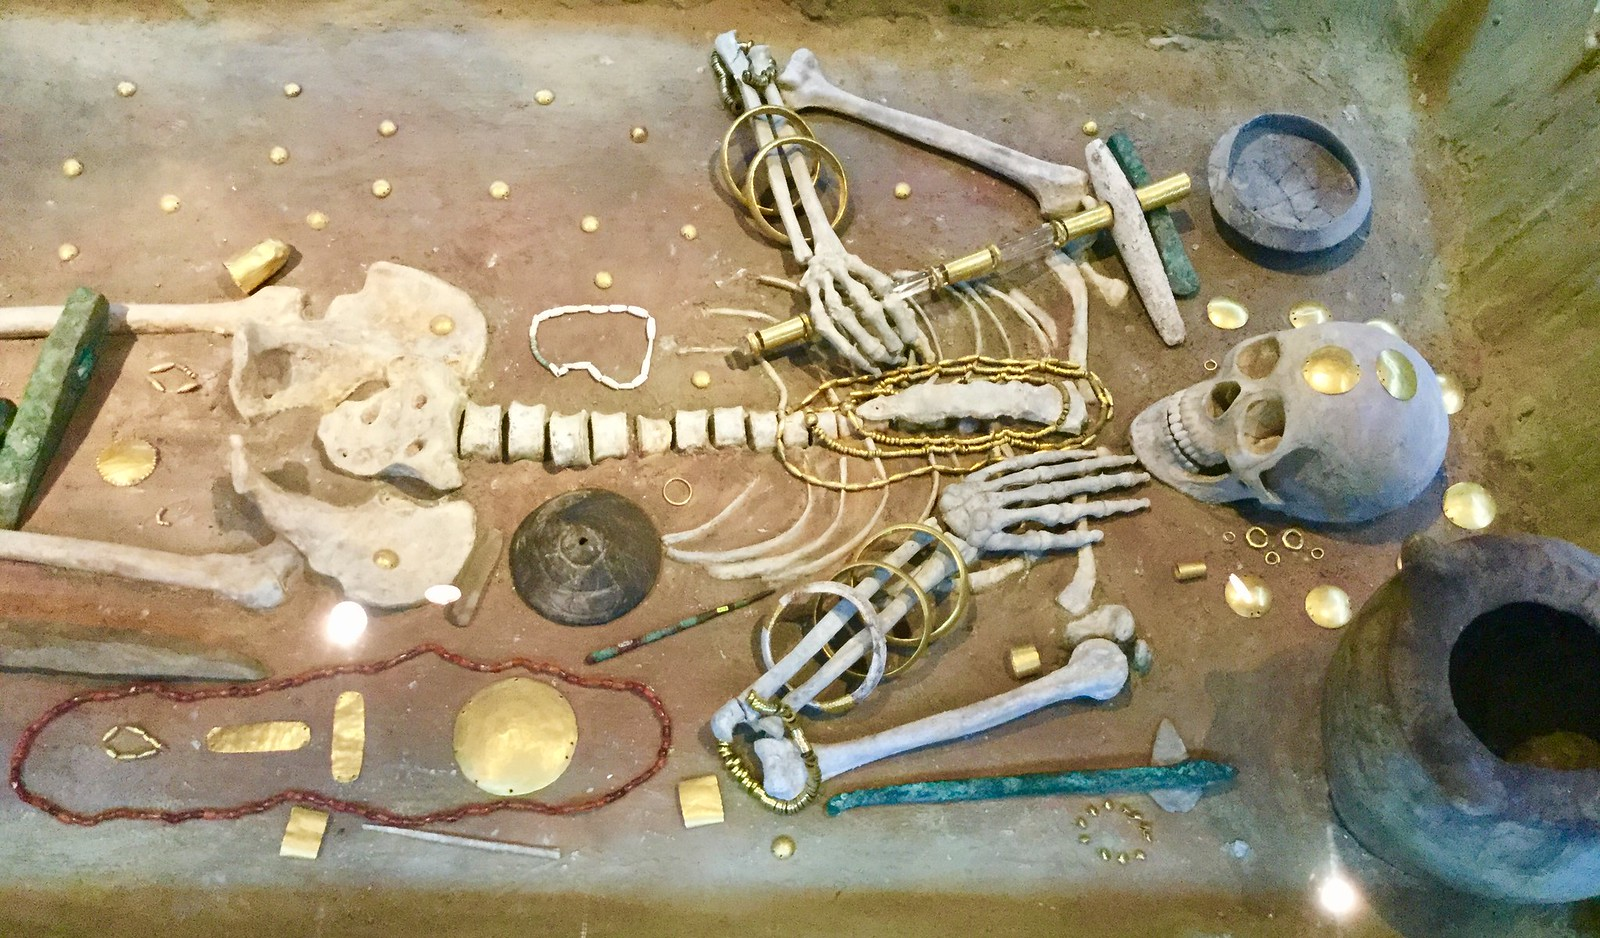 201705 - Balkans - Stone Age king with Earliest Wrought-Gold Artifacts - 39 of 101 - Varna - Varna, May 25, 2017